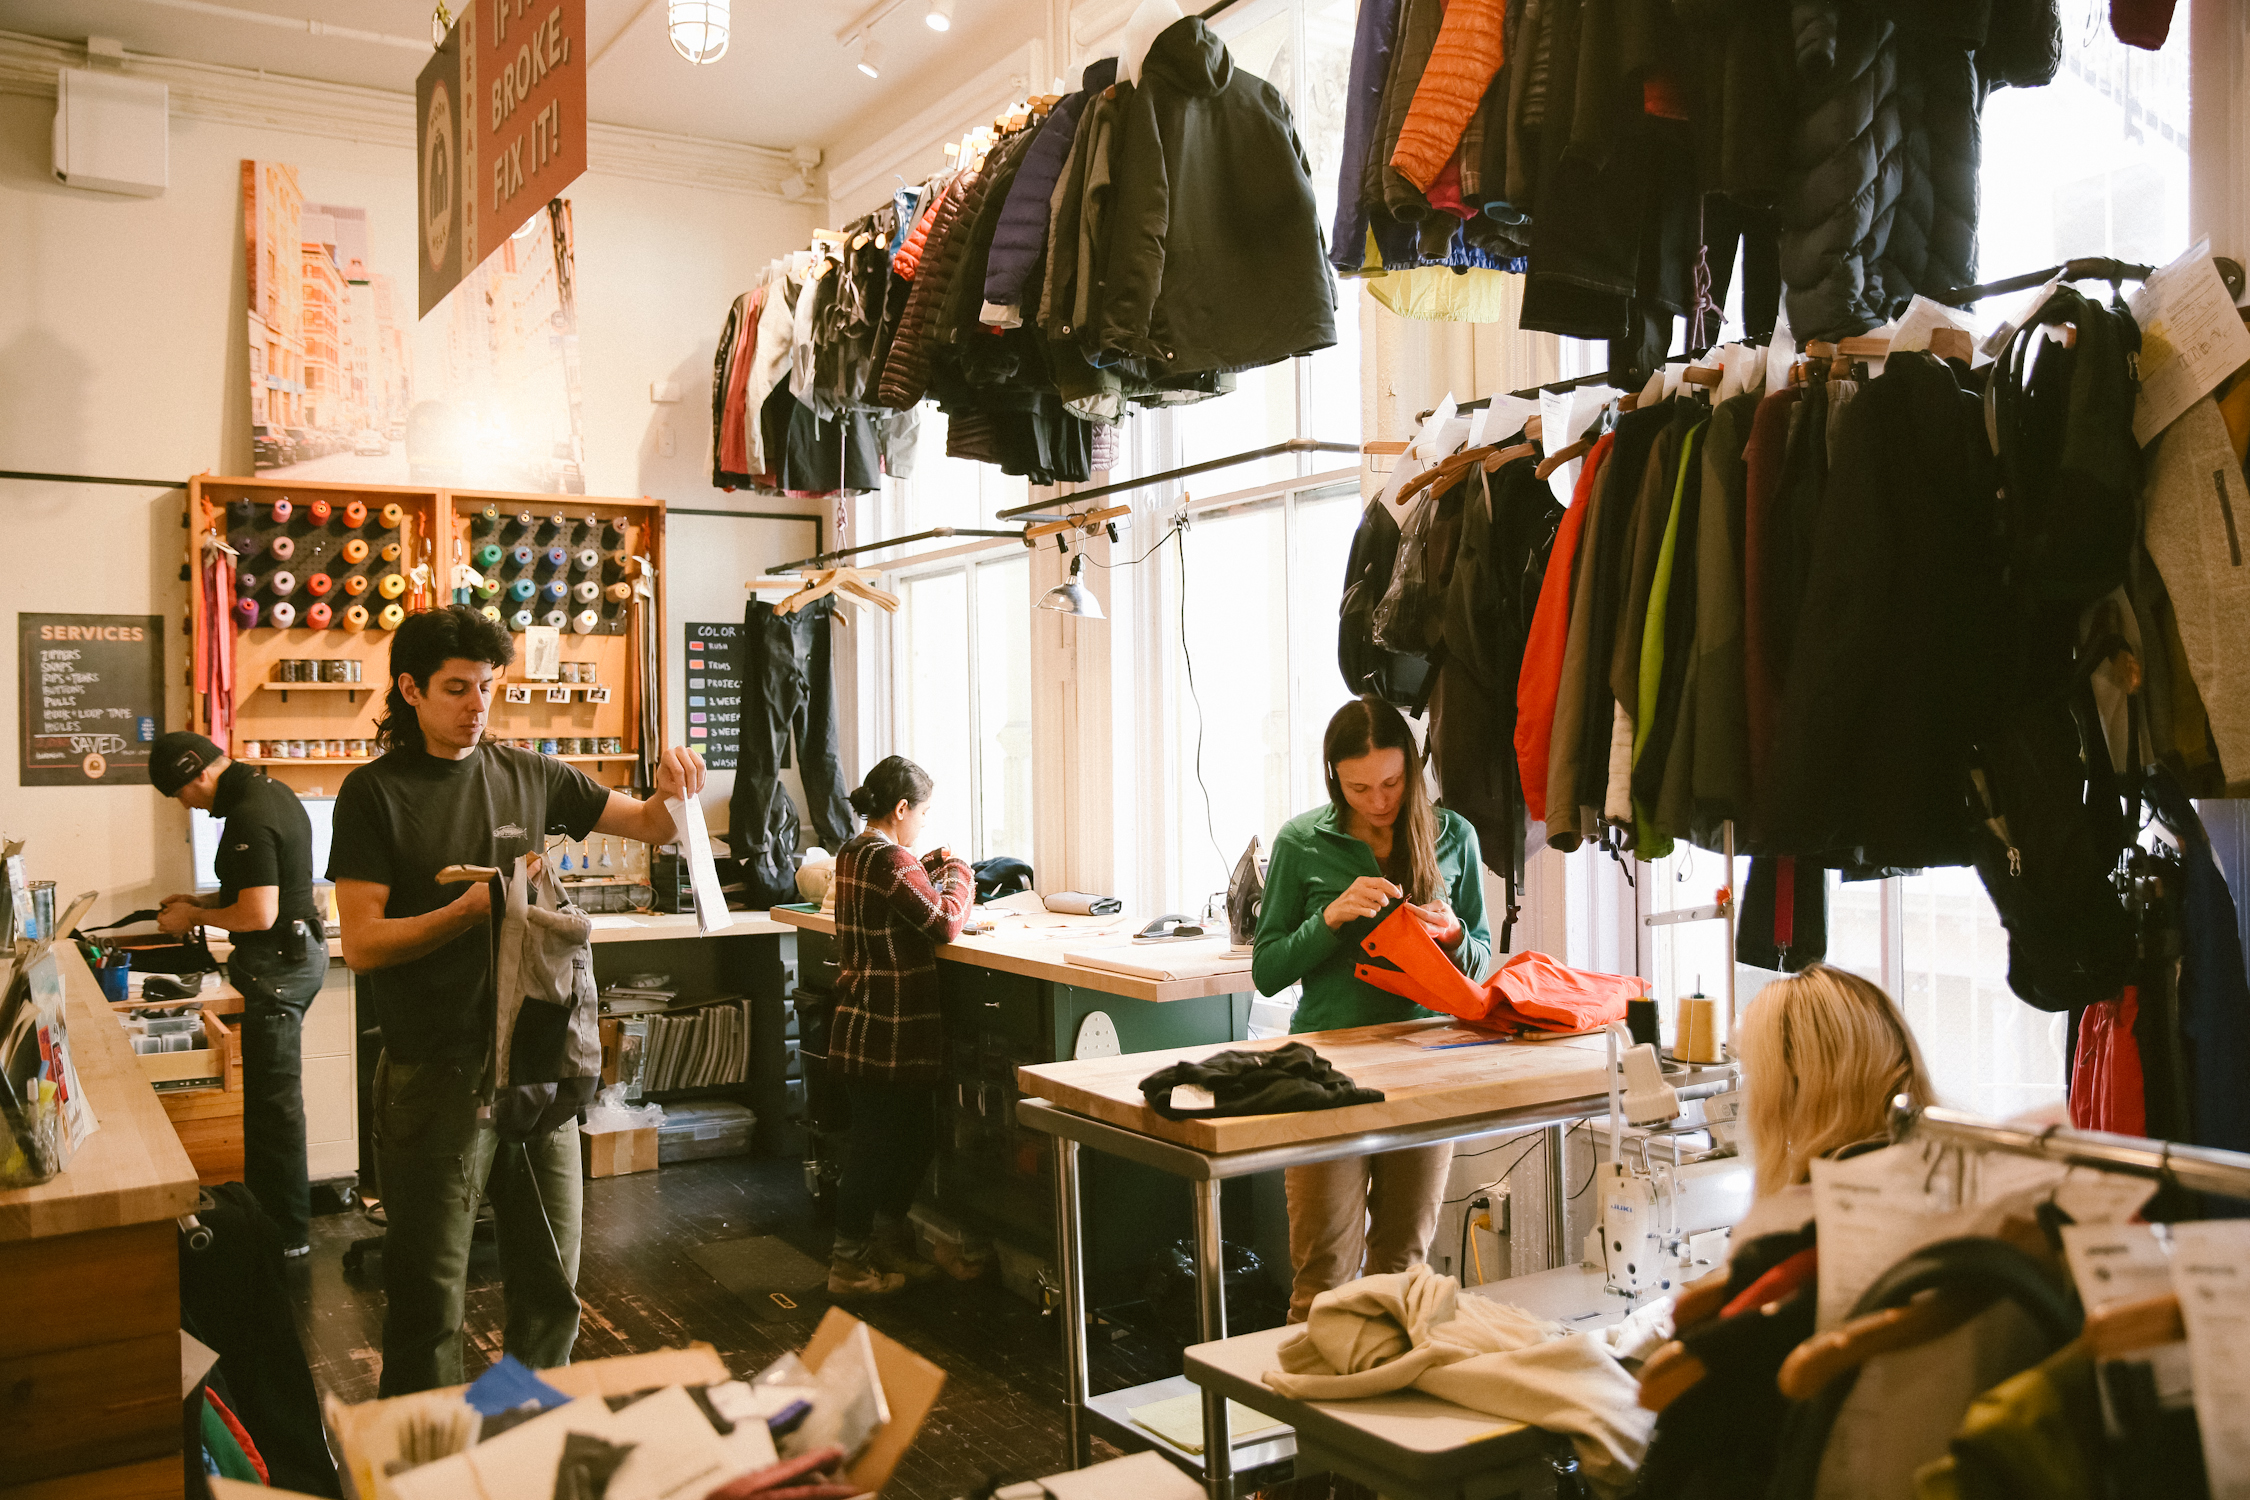 SOHO Patagonia Retail Store Worn Wear Repair Center. All models are Patagonia employees.